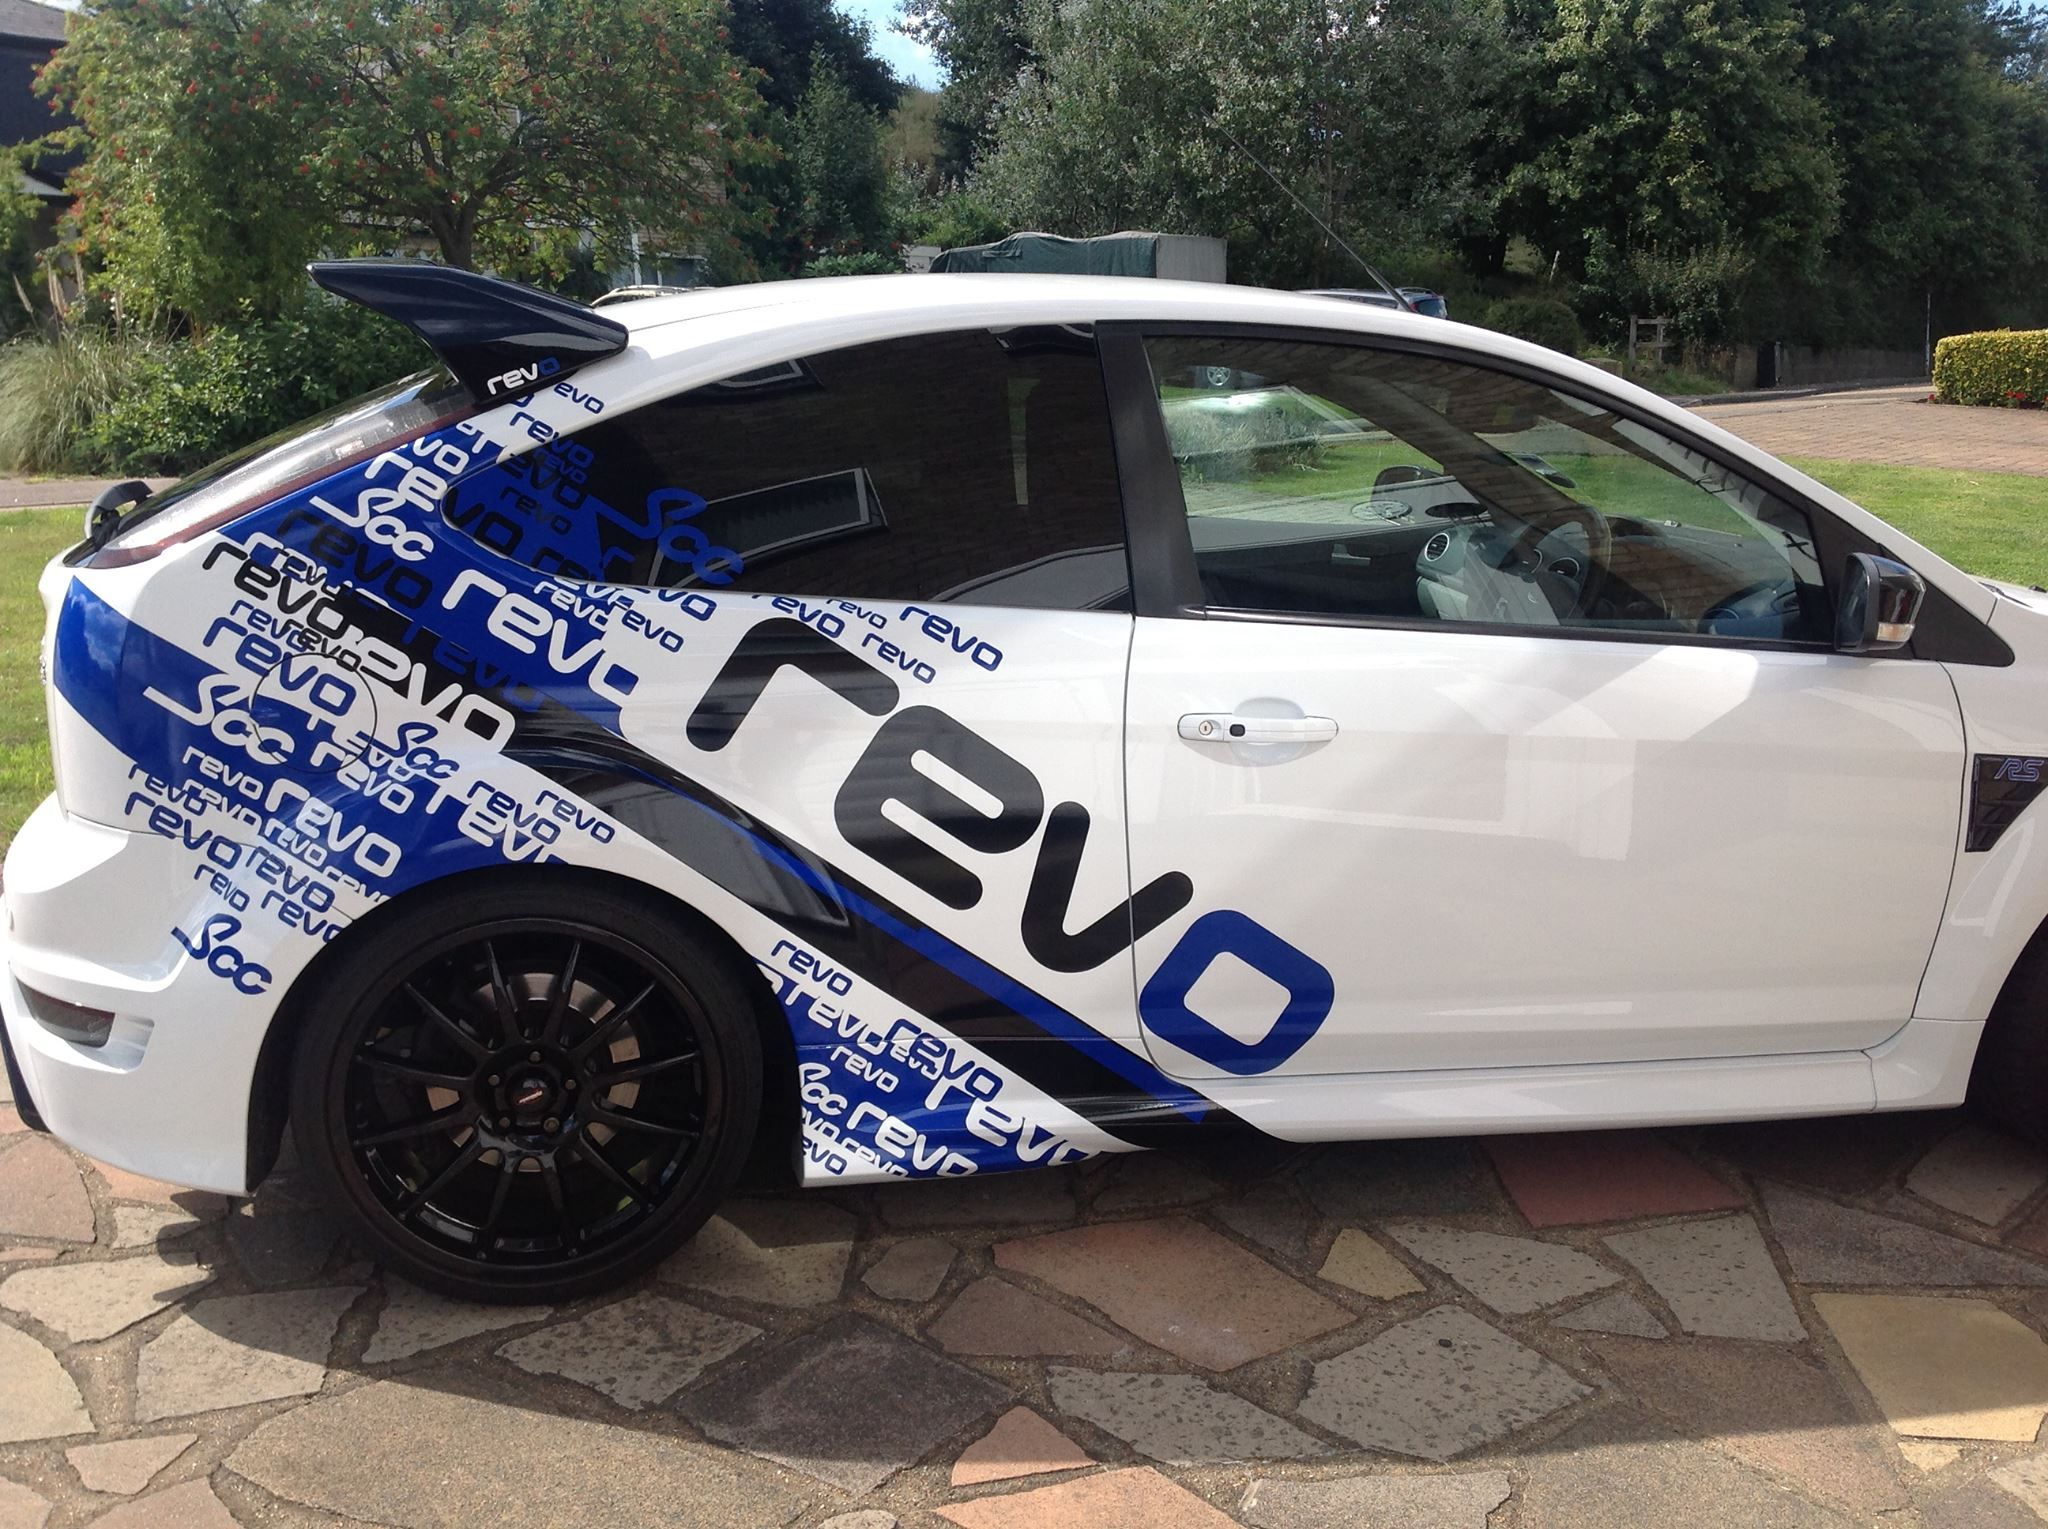 Another revo scc graphic car hit s the streets